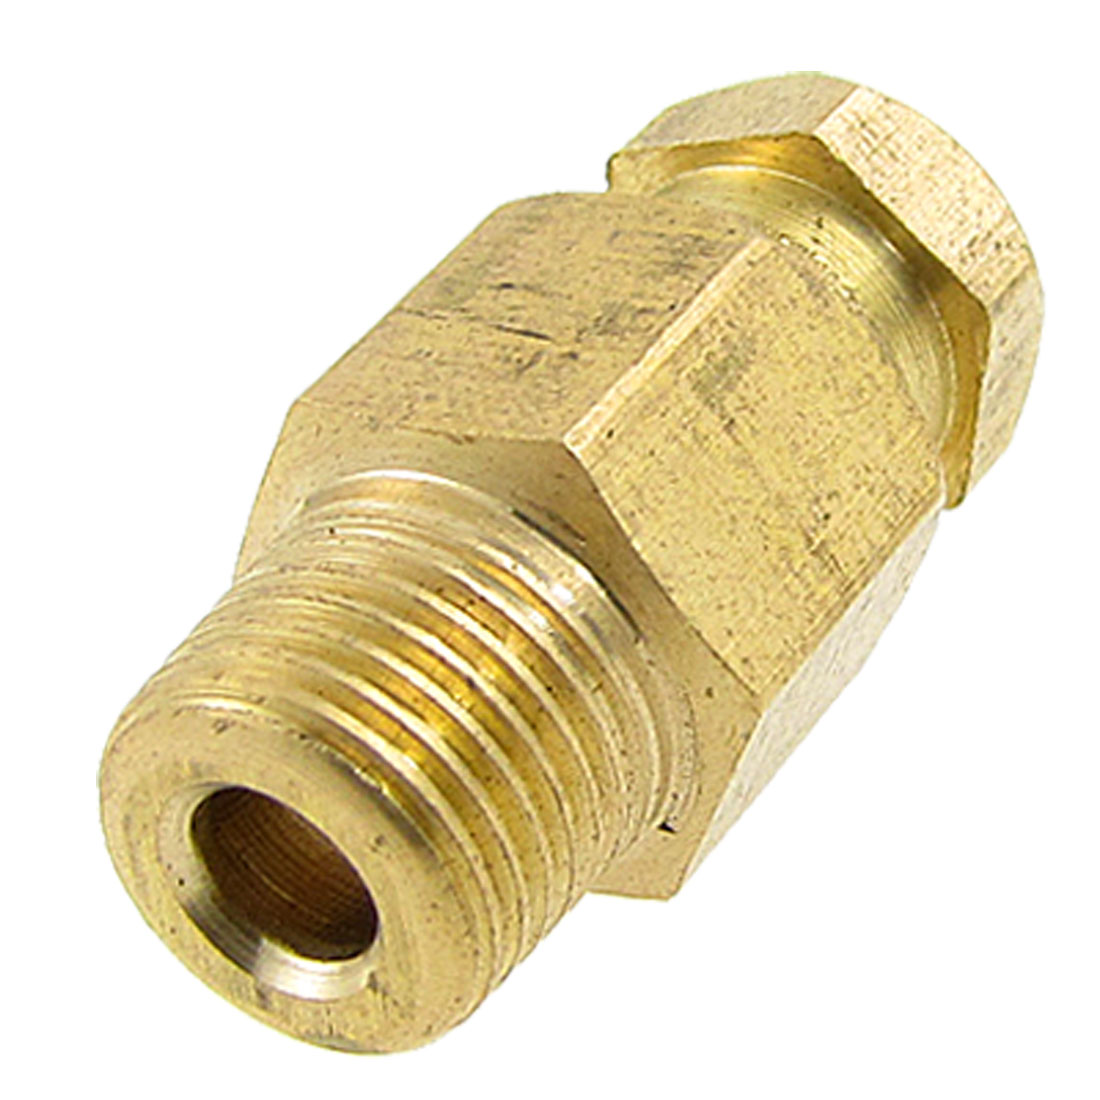 Injection Molding Machine 9mm Male Thread Brass Straight Coupling Connector